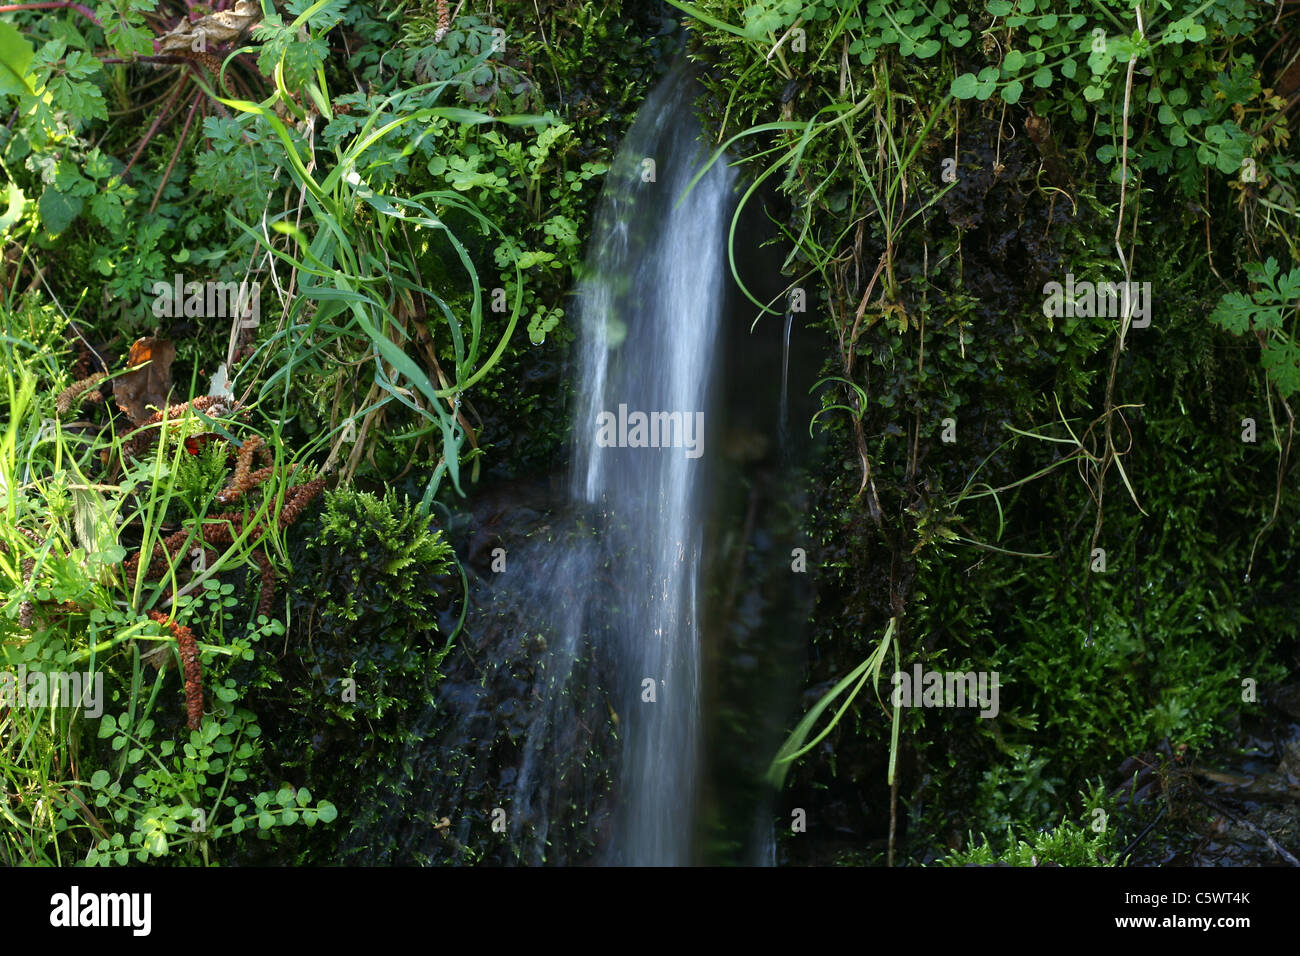 A source appears in the rock covered by vegetation (Normandy-Maine park, Orne, Normandy, France). - Stock Image